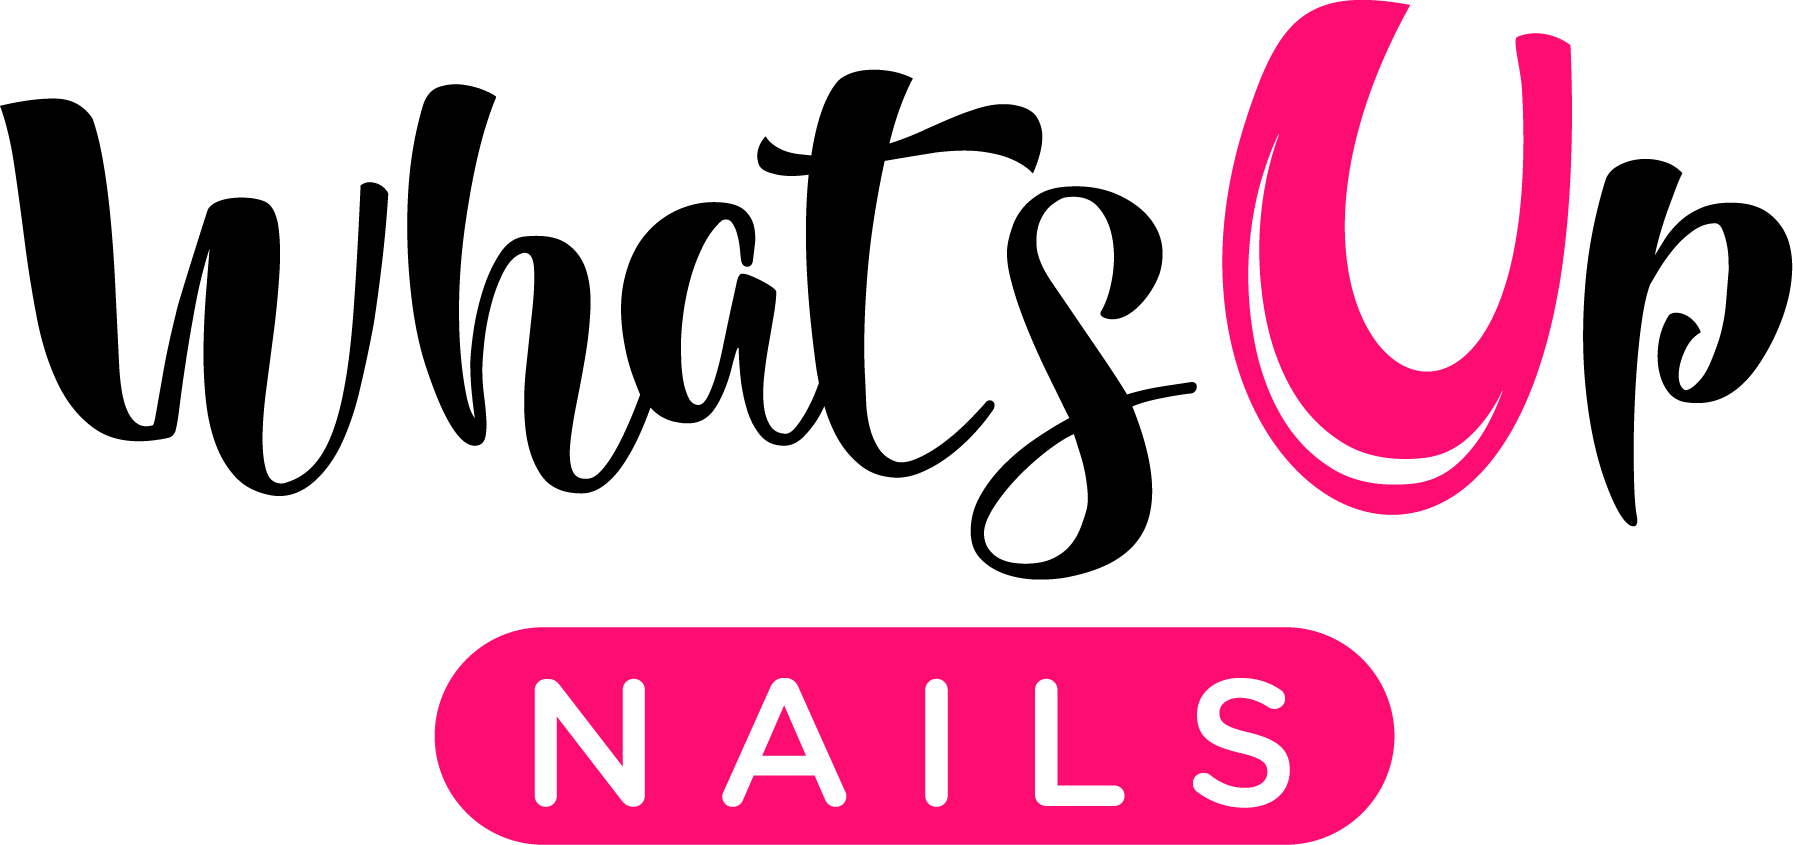 whatsupnails-logo.jpg